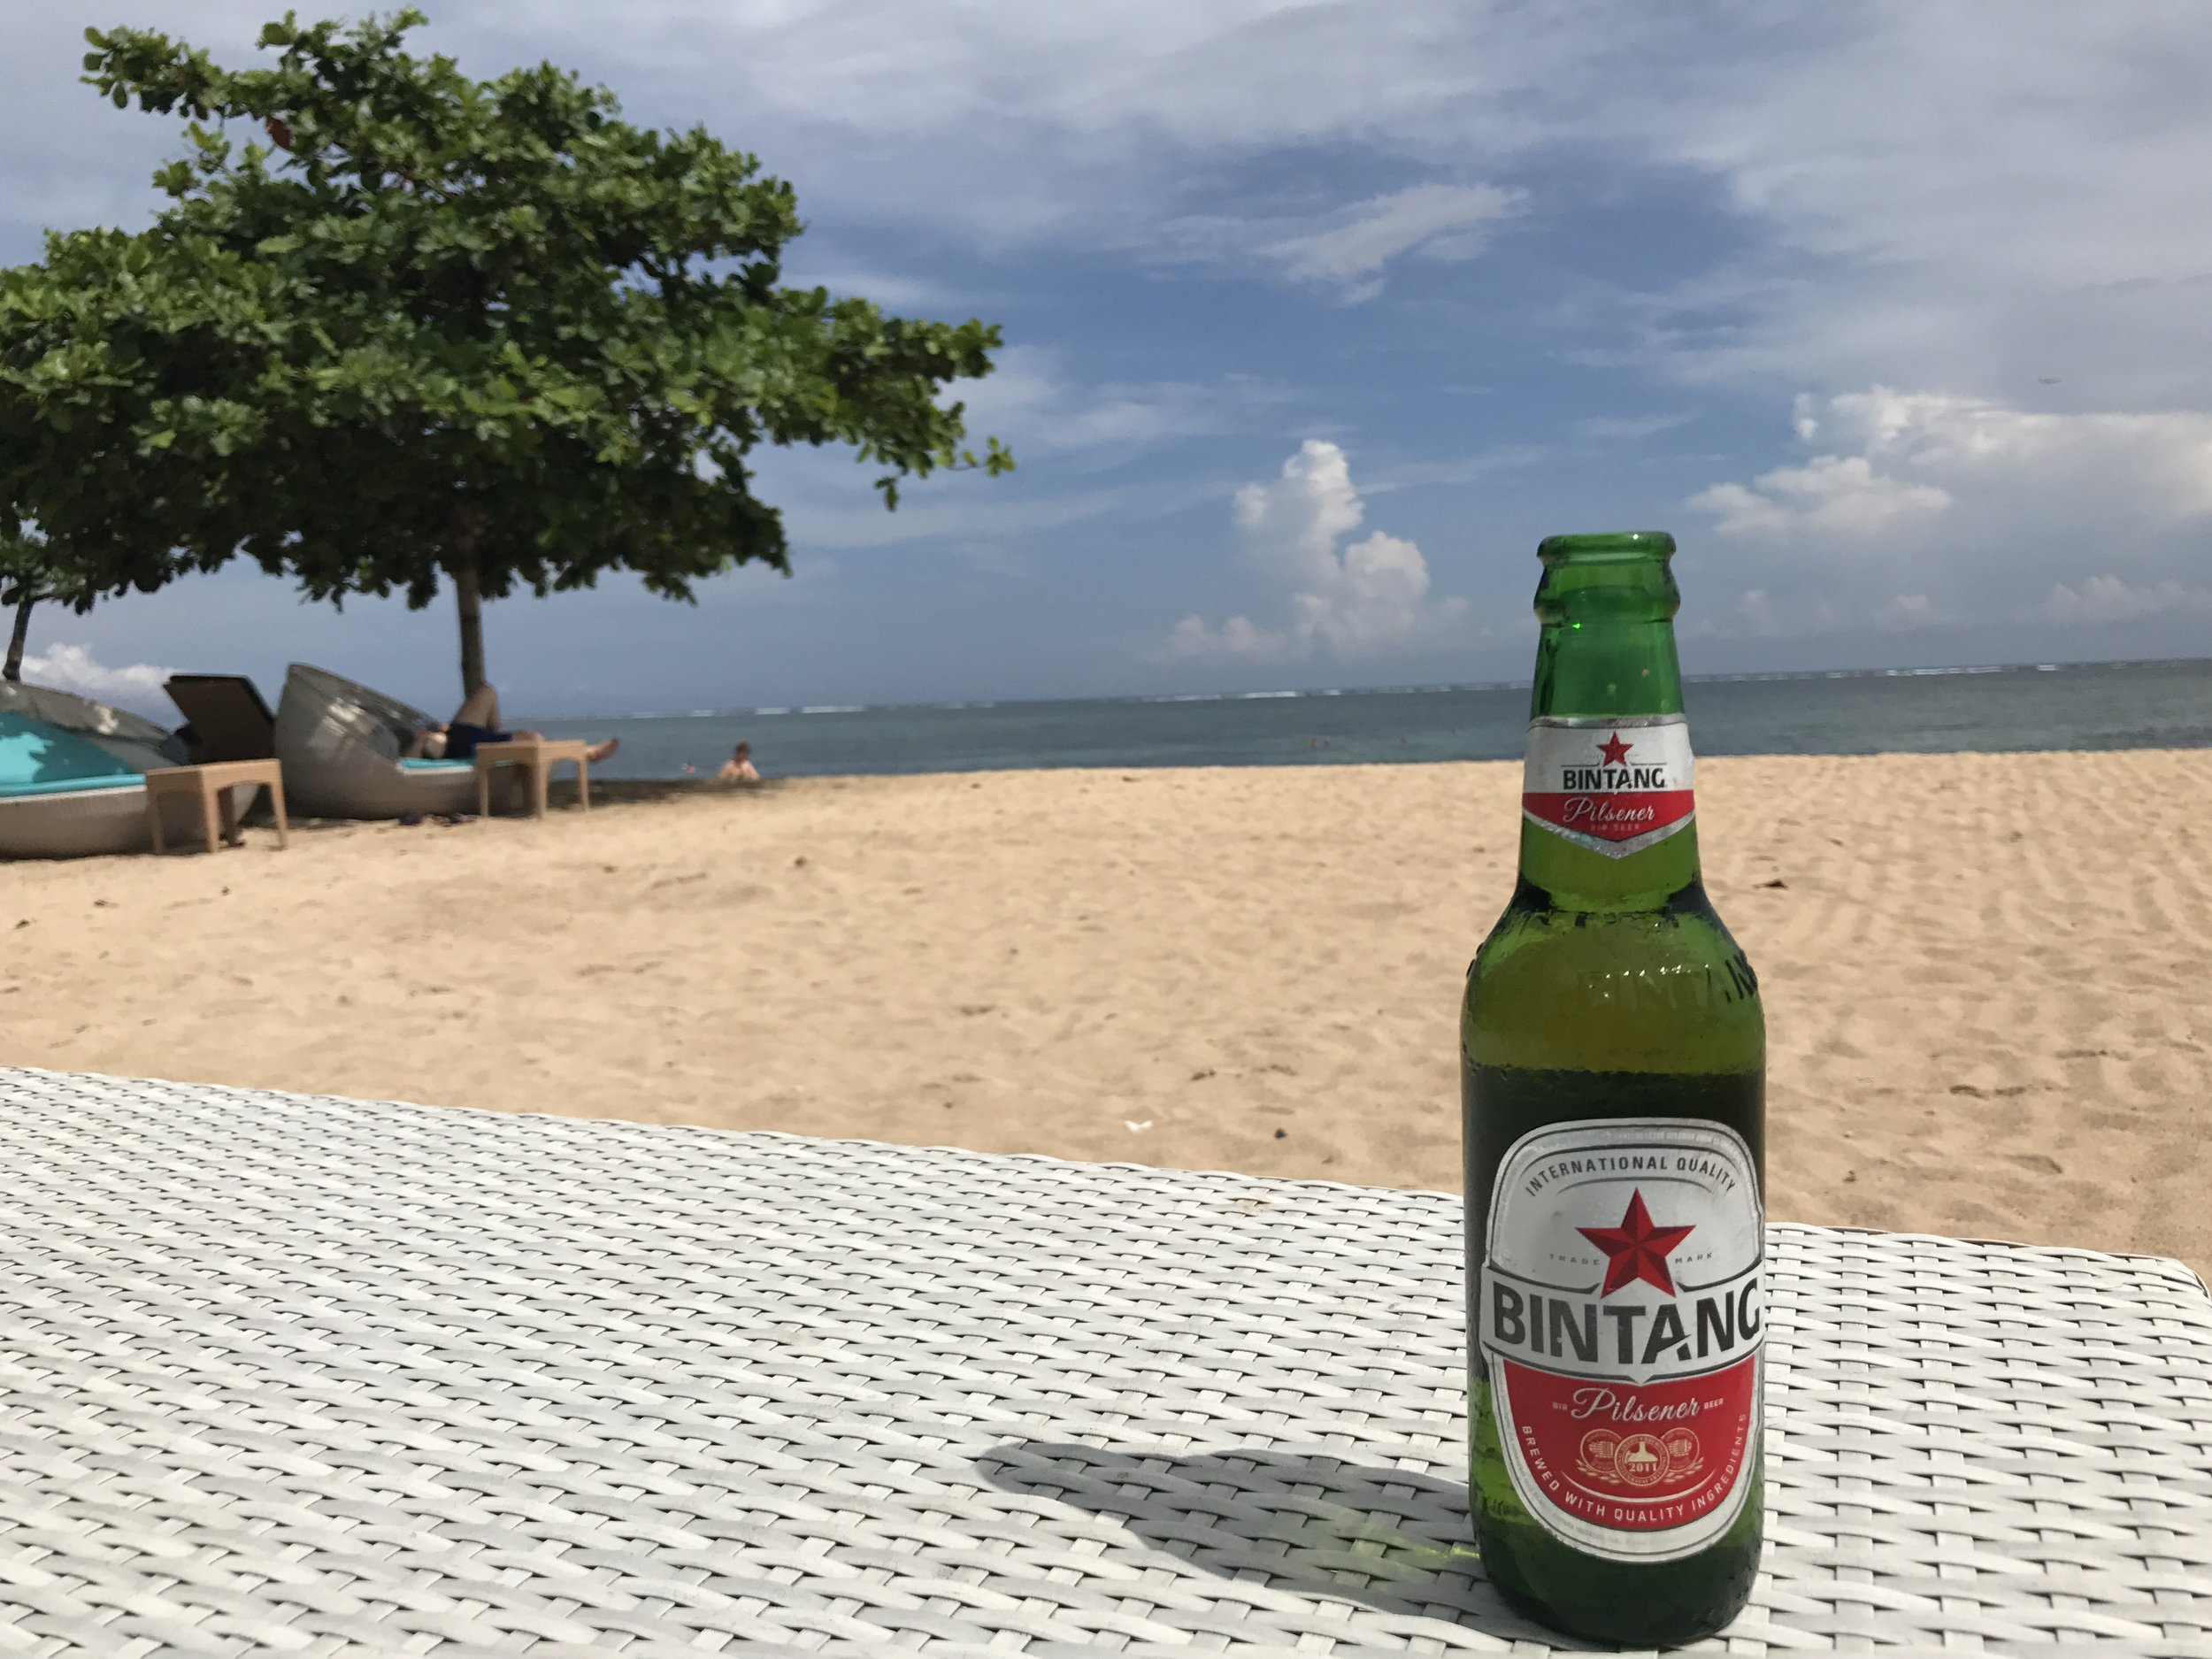 Ice cold Bintang beer helps to cool you down on a sunny beach.